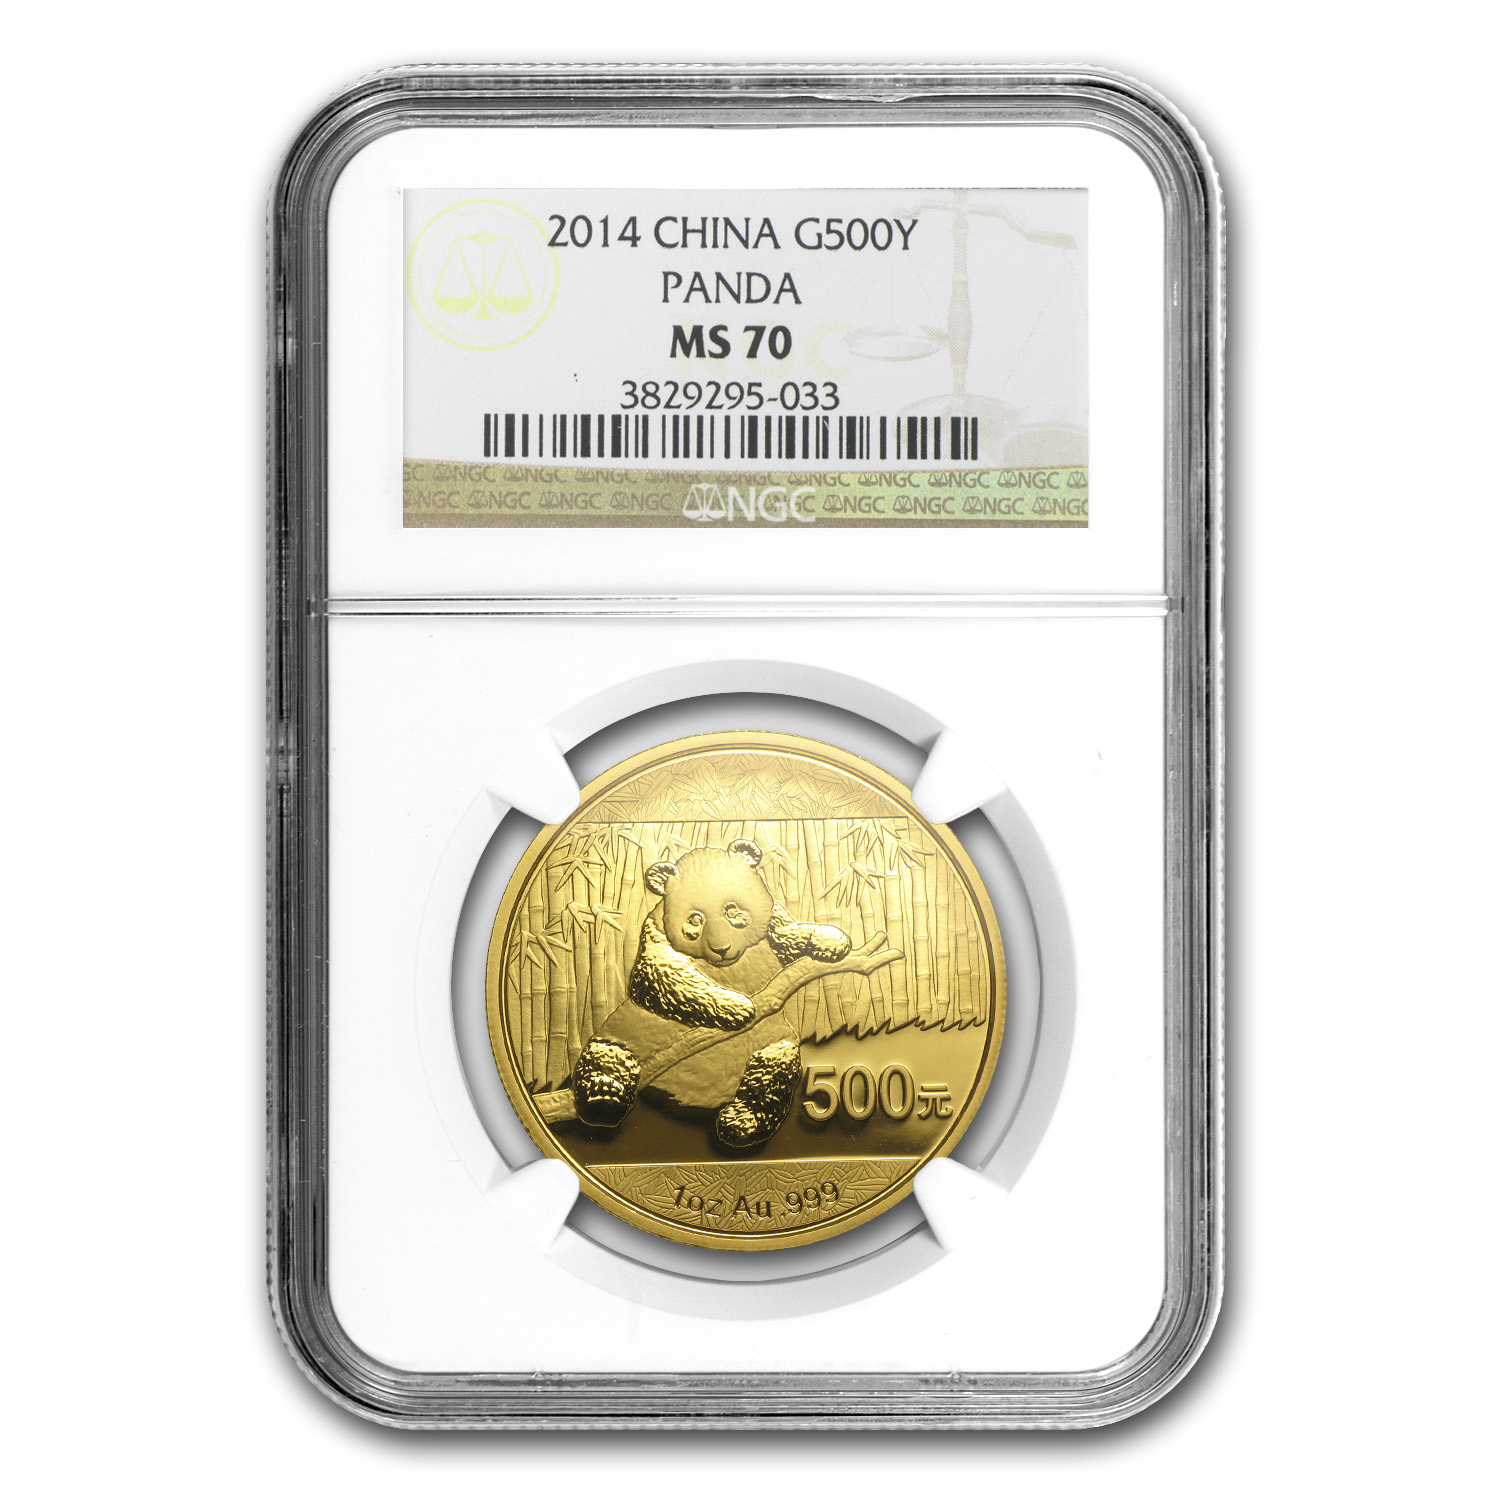 2014 1 oz Gold Chinese Panda MS-70 NGC